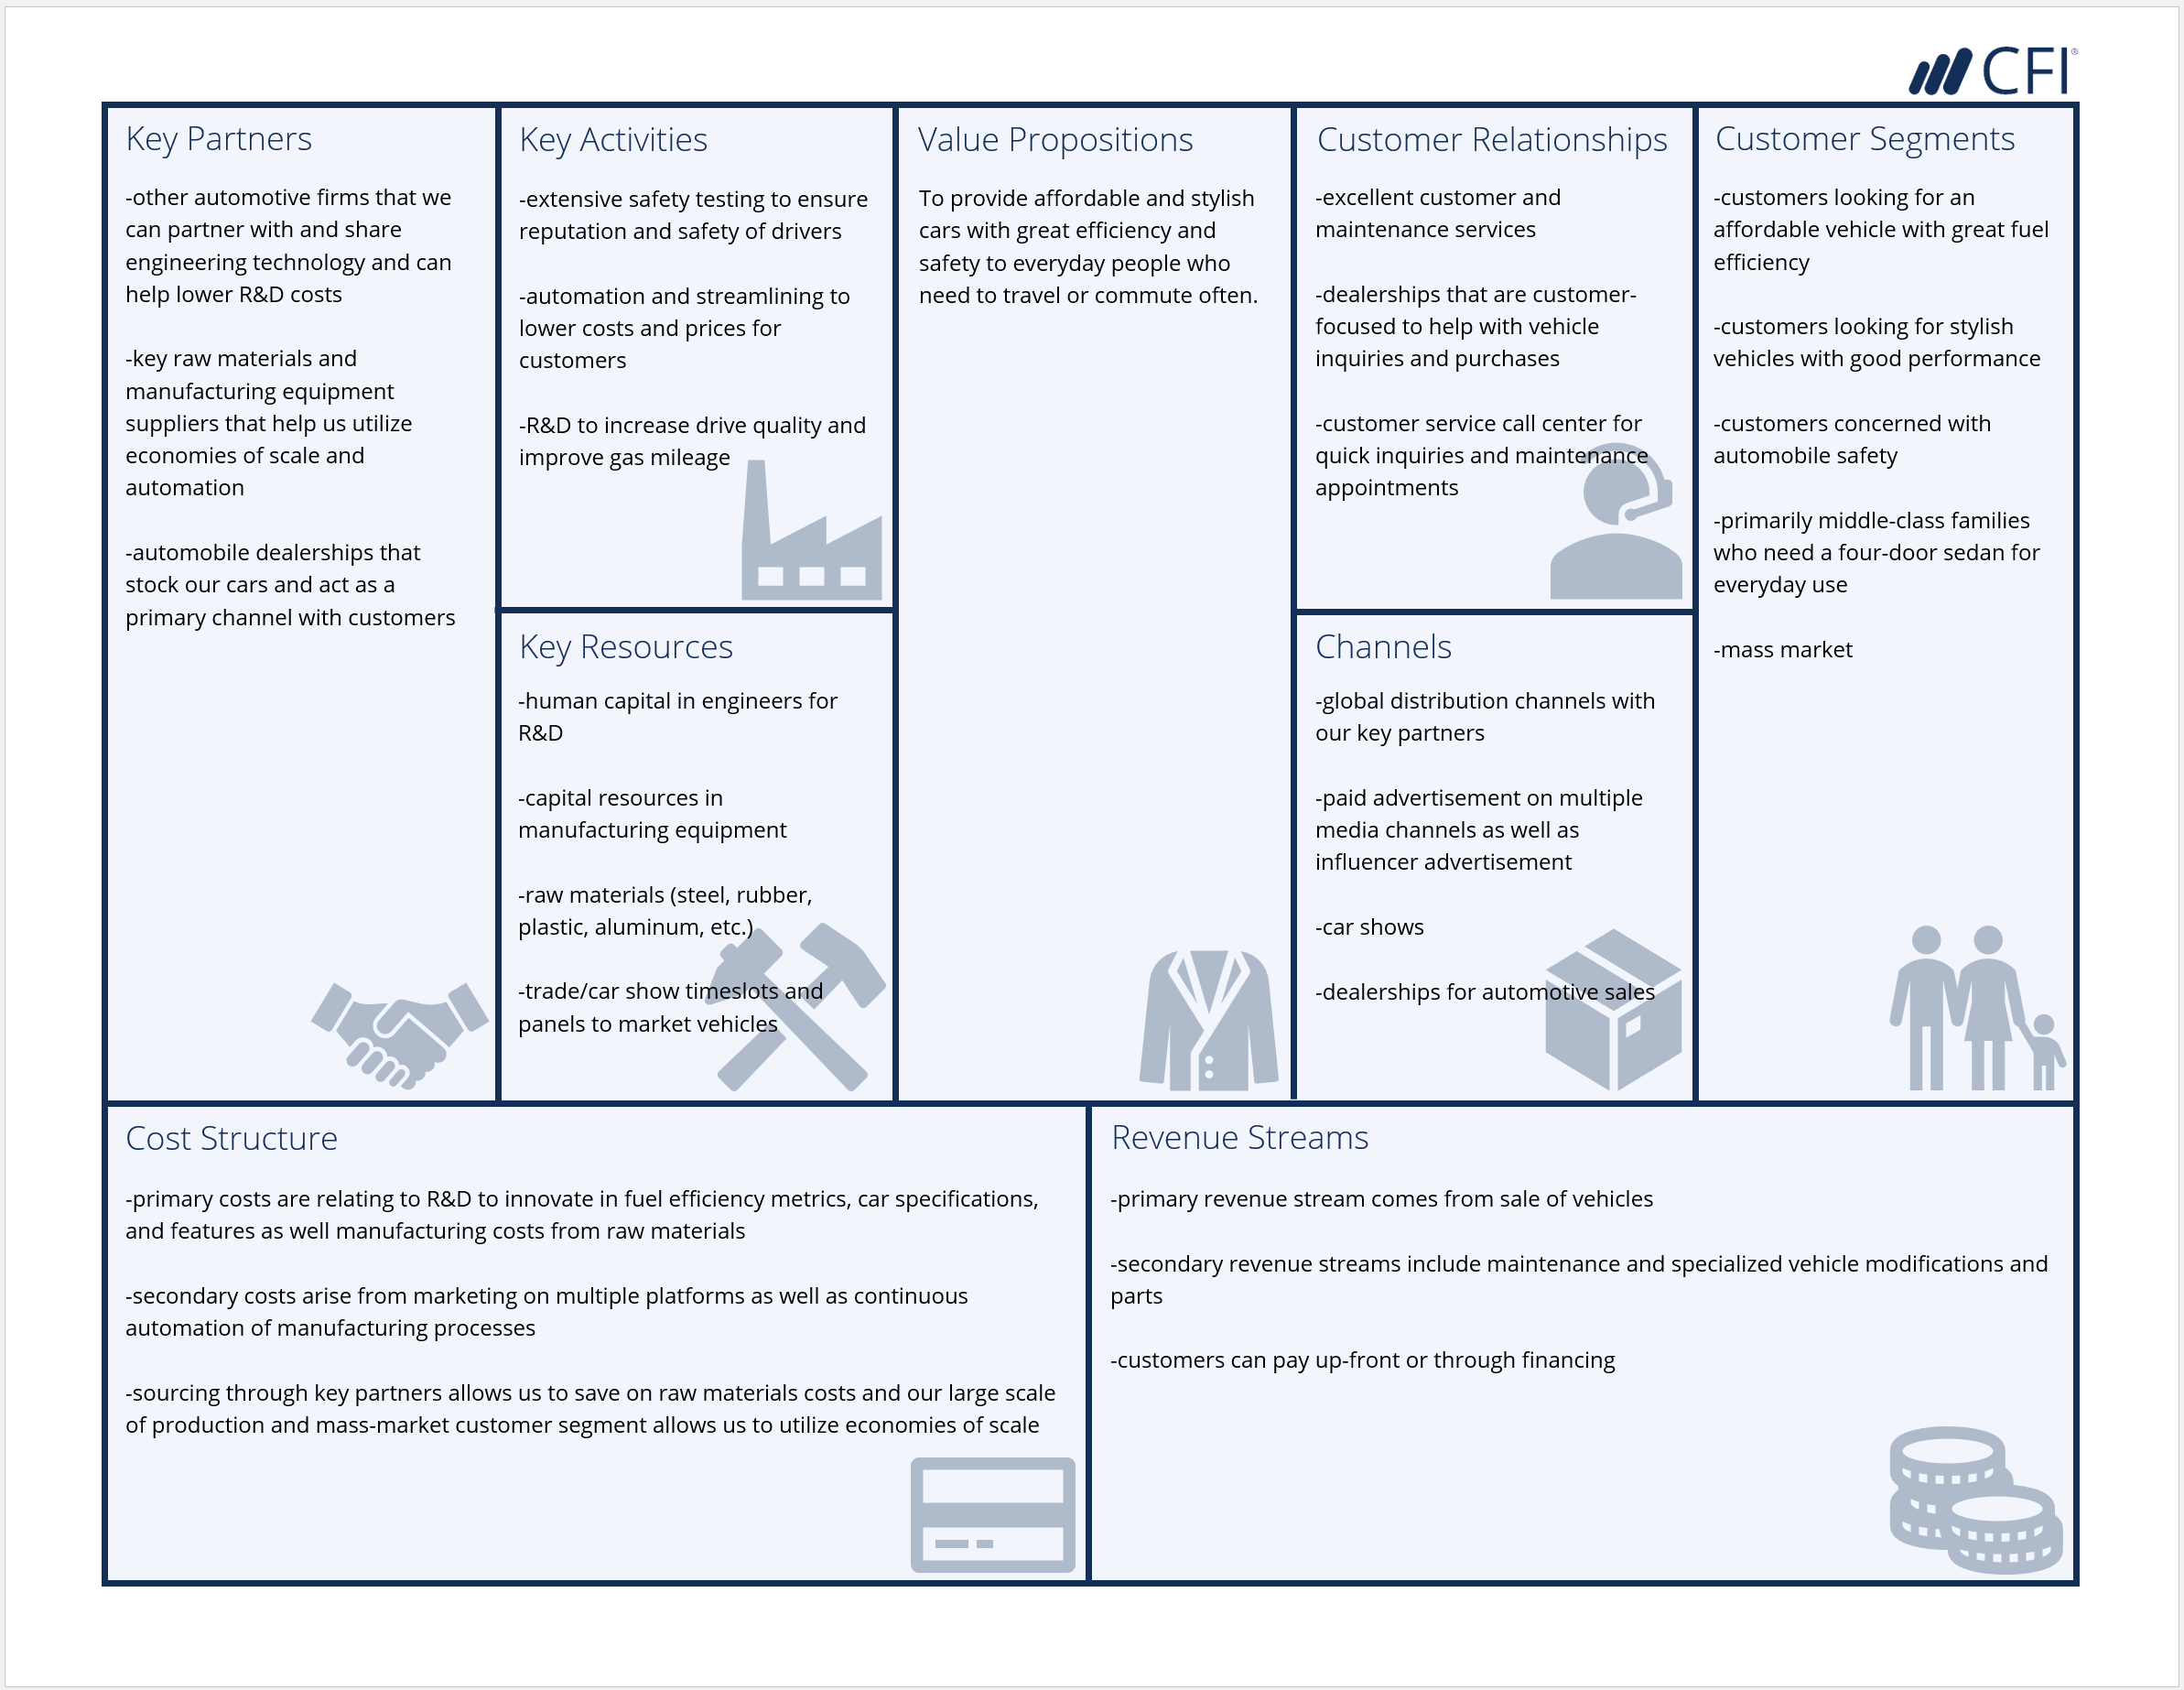 Business Model Canvas - Automotive Example